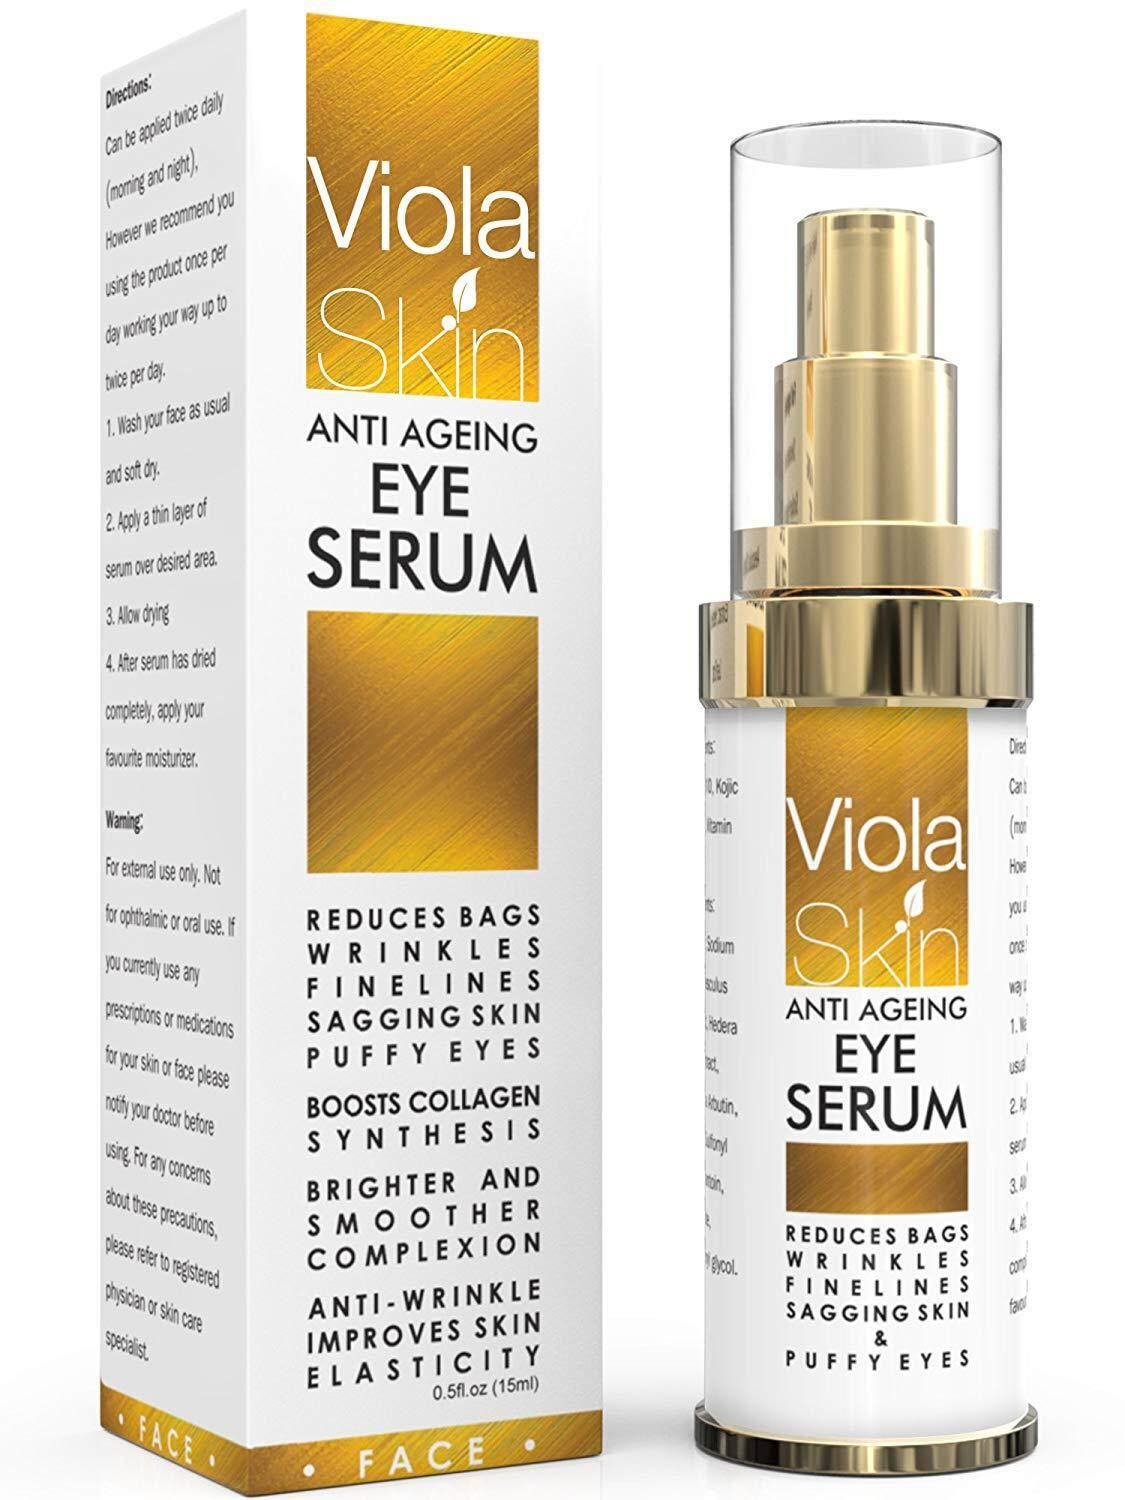 ViolaSkin PREMIUM Anti Ageing Eye Serum for Dark Circles & Puffiness - Anti Wrinkle Eye Serum - Reduces Wrinkles, Bags, Saggy Skin & Puffy Eyes! High Quality Ingredients - Q10 - Matrixyl 3000 - Great Eye Treatment For All Types Of Skin. 100% Satisfaction